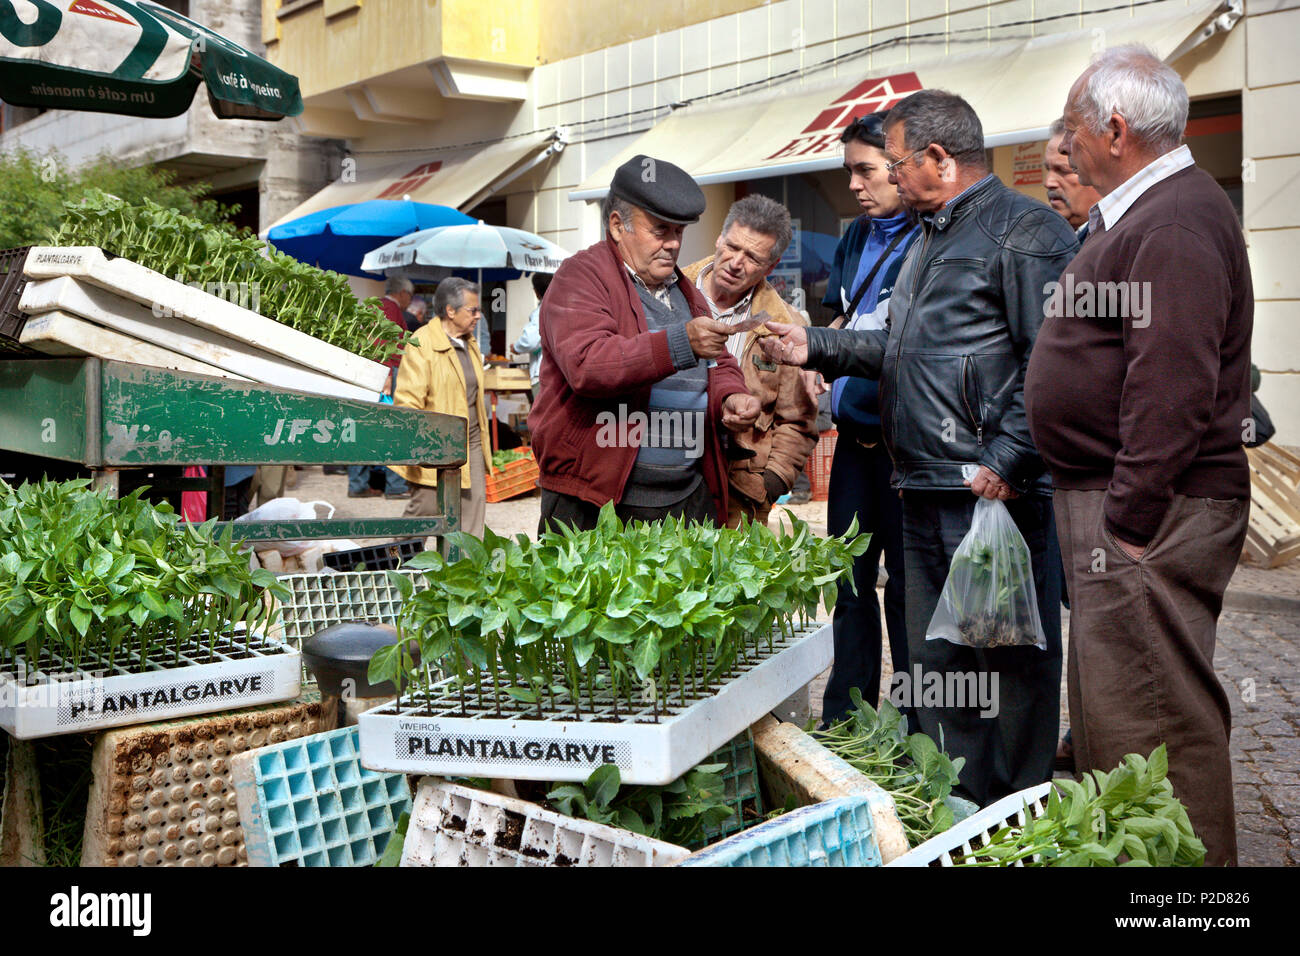 Plant stall, Market in front of the market stall, Silves, Algarve, Portugal - Stock Image